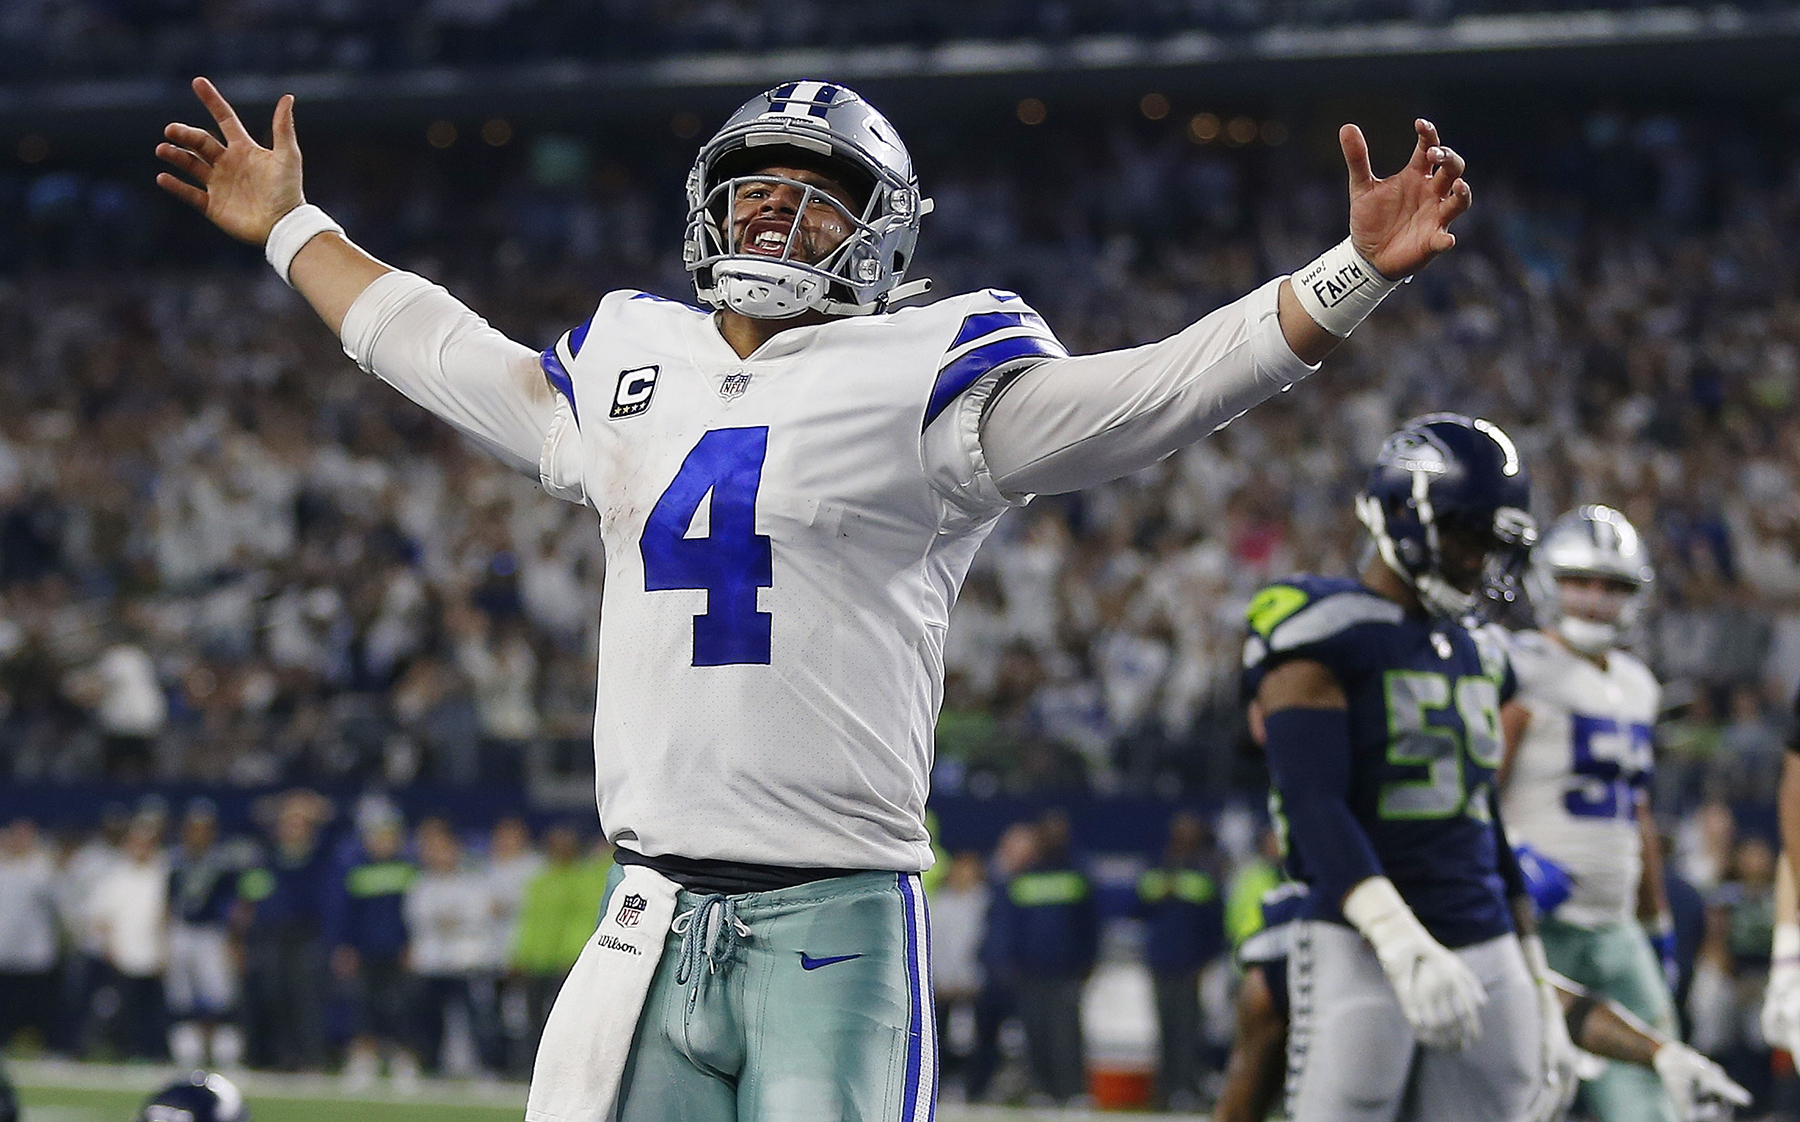 0c088db1a Dallas Cowboys quarterback Dak Prescott (4) celebrates his first down near  the goal line against the Seattle Seahawks during the second half of the  NFC wild ...